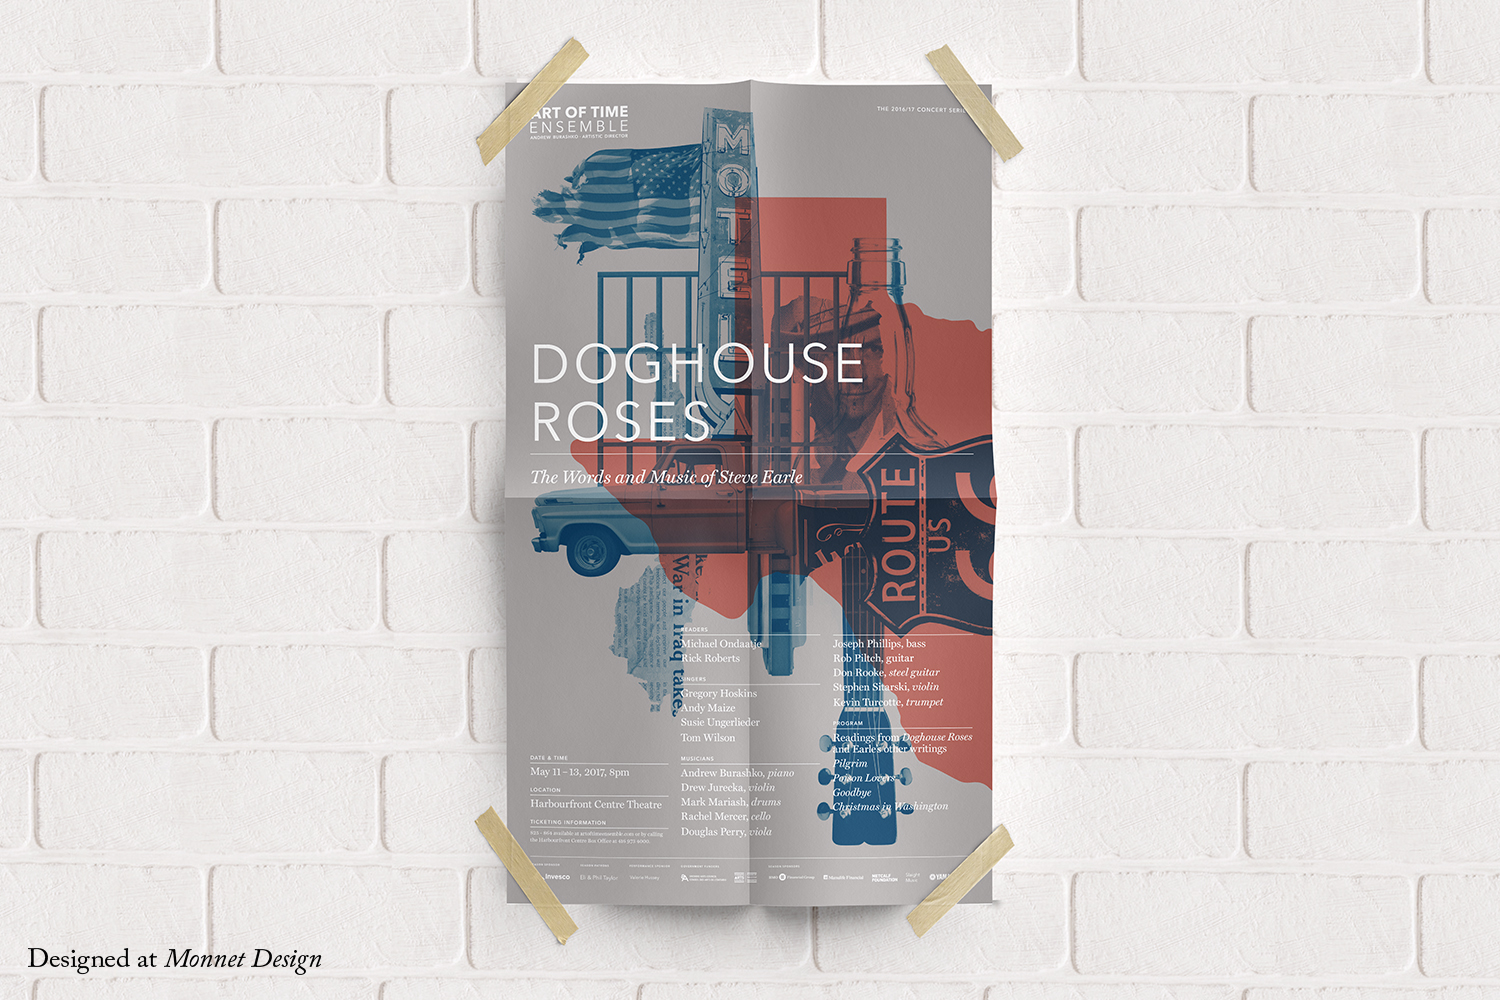 Doghouse Roses Poster